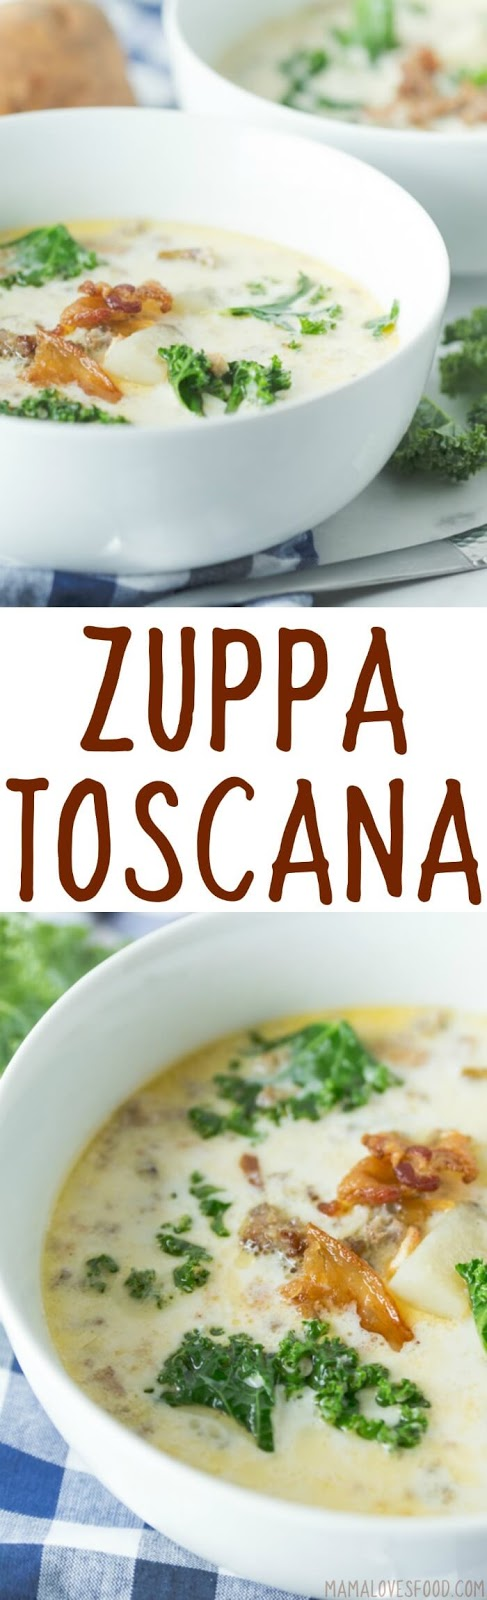 zuppa toscana better than pioneer woman